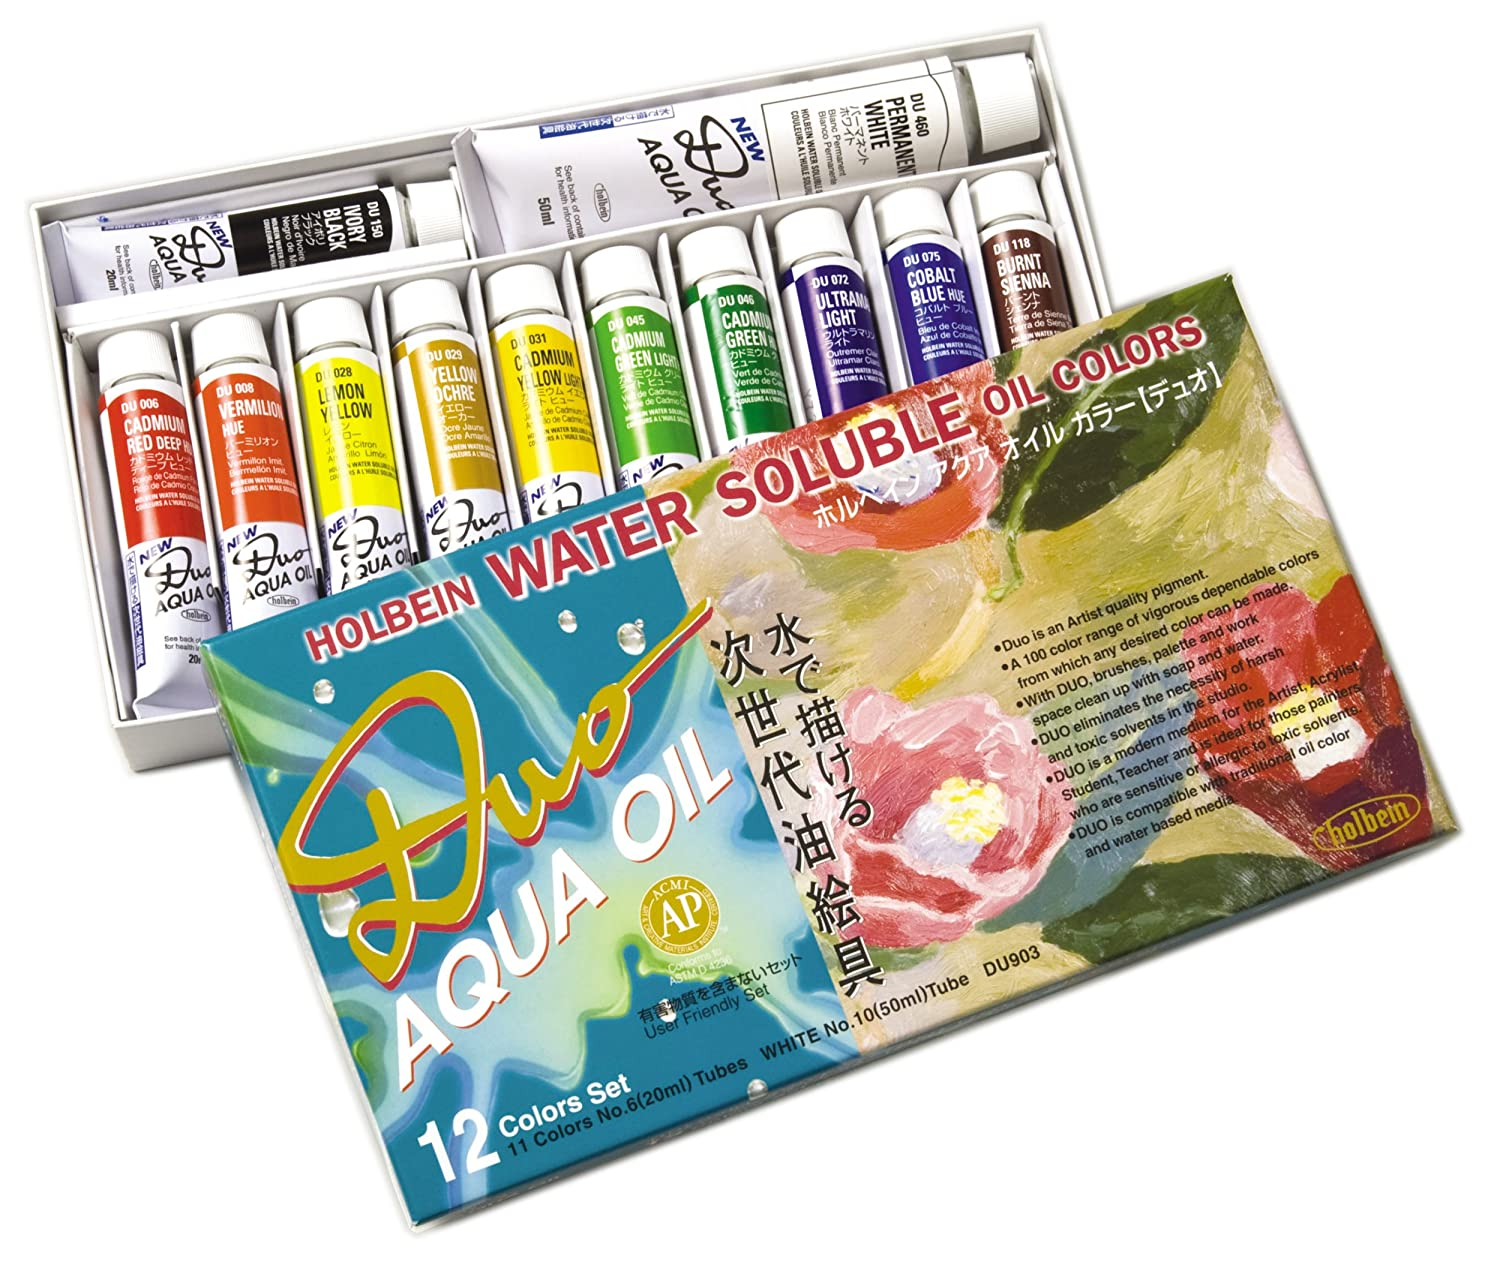 Amazon holbein duo aqua water soluble oil color ap set of 12 amazon holbein duo aqua water soluble oil color ap set of 12 20 ml tubes toys games nvjuhfo Choice Image